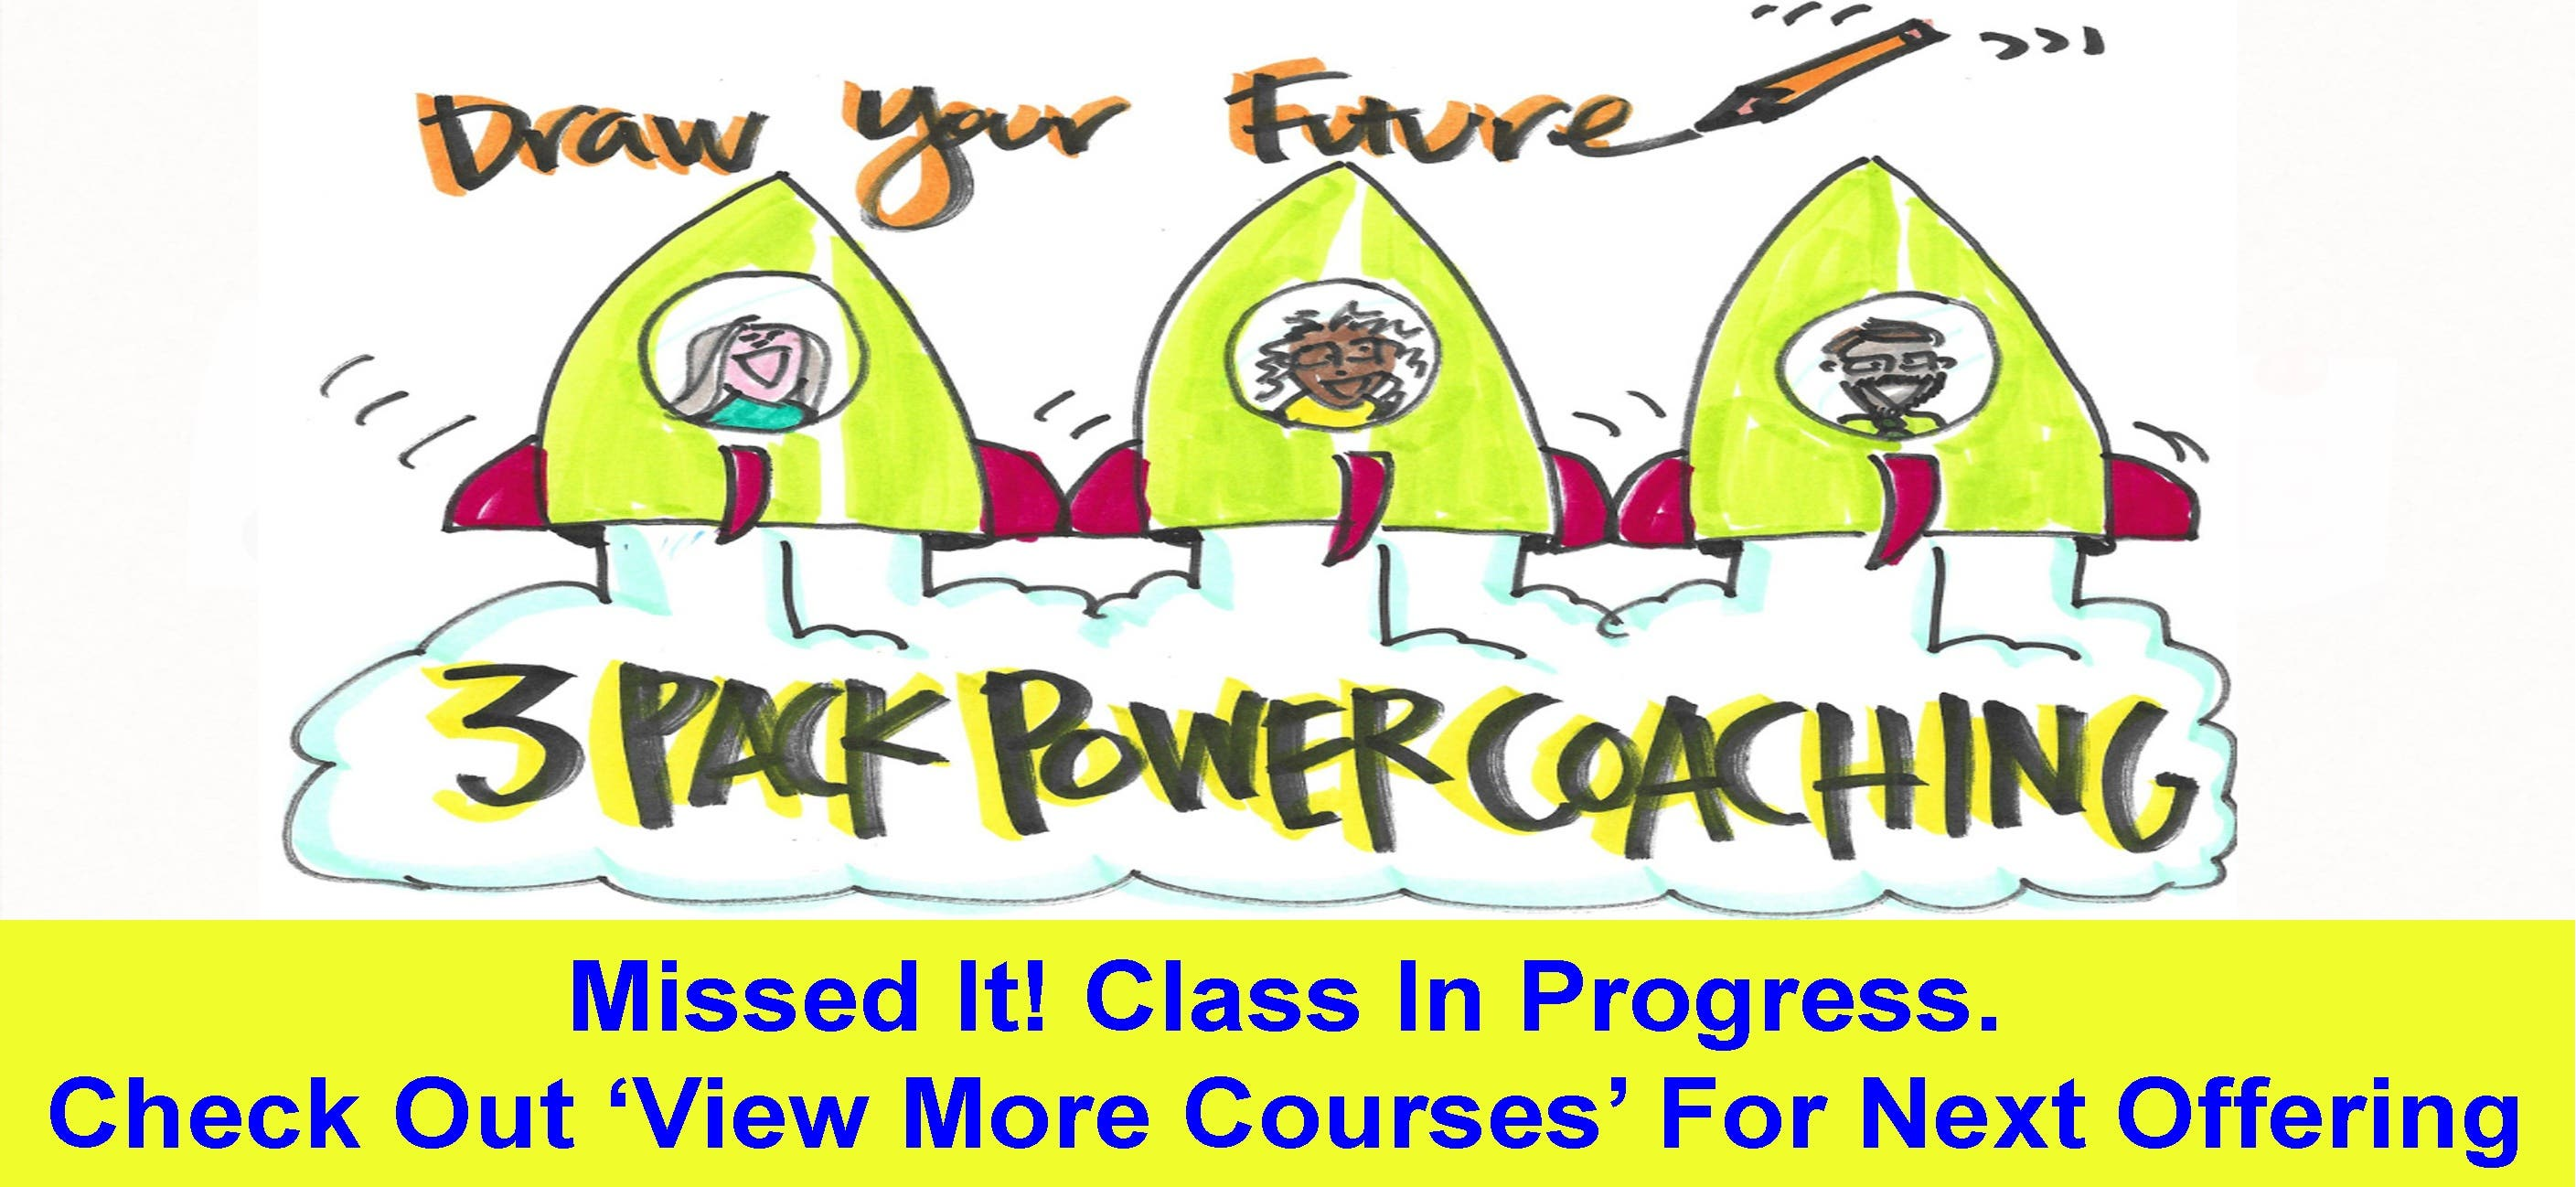 Draw Your Future 3-Pack Power Coaching- Starting November 12th at 2pm CST